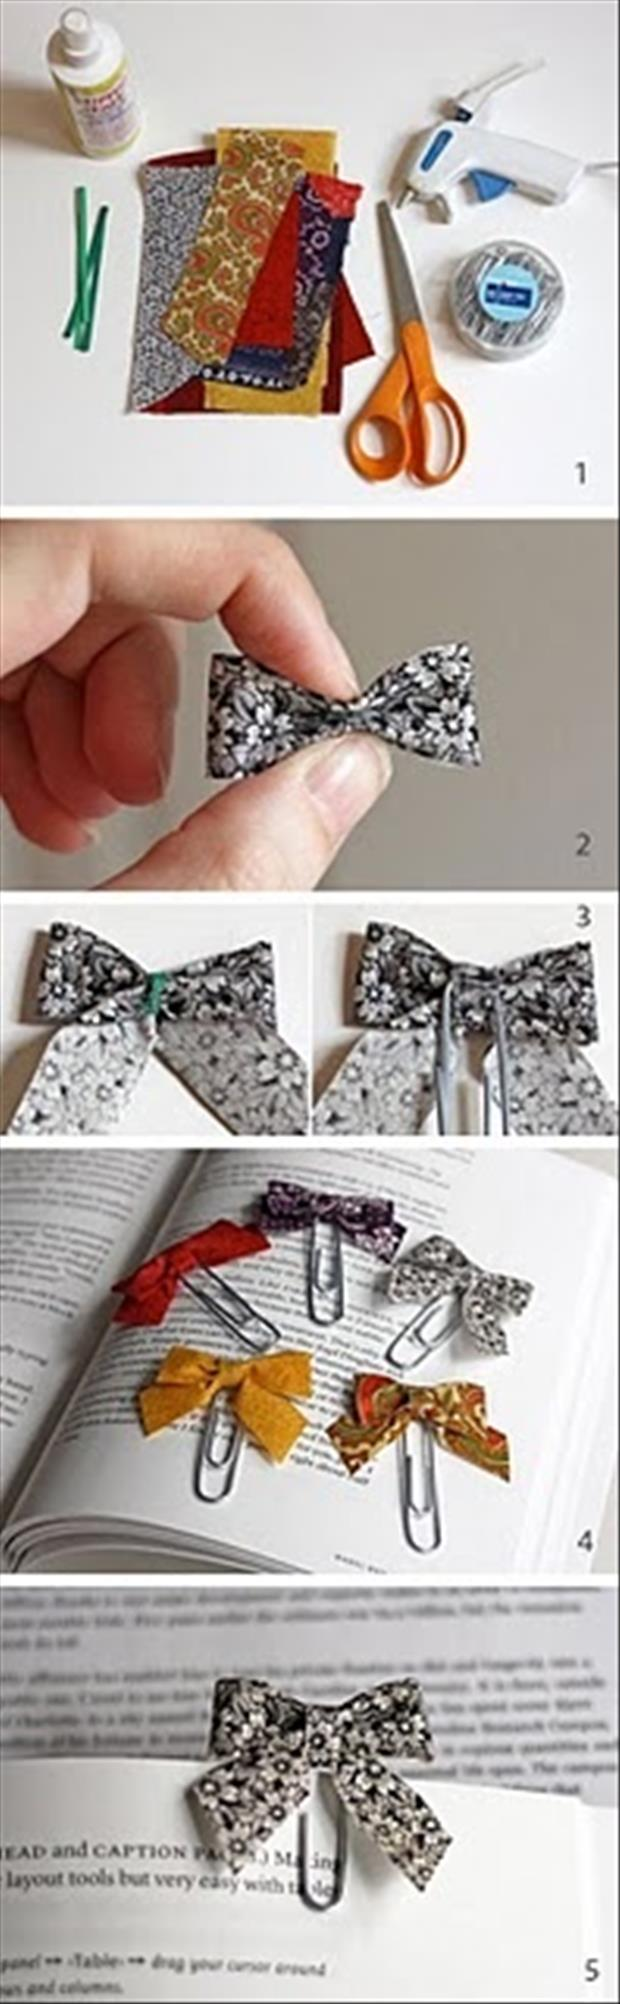 how to make a book mark